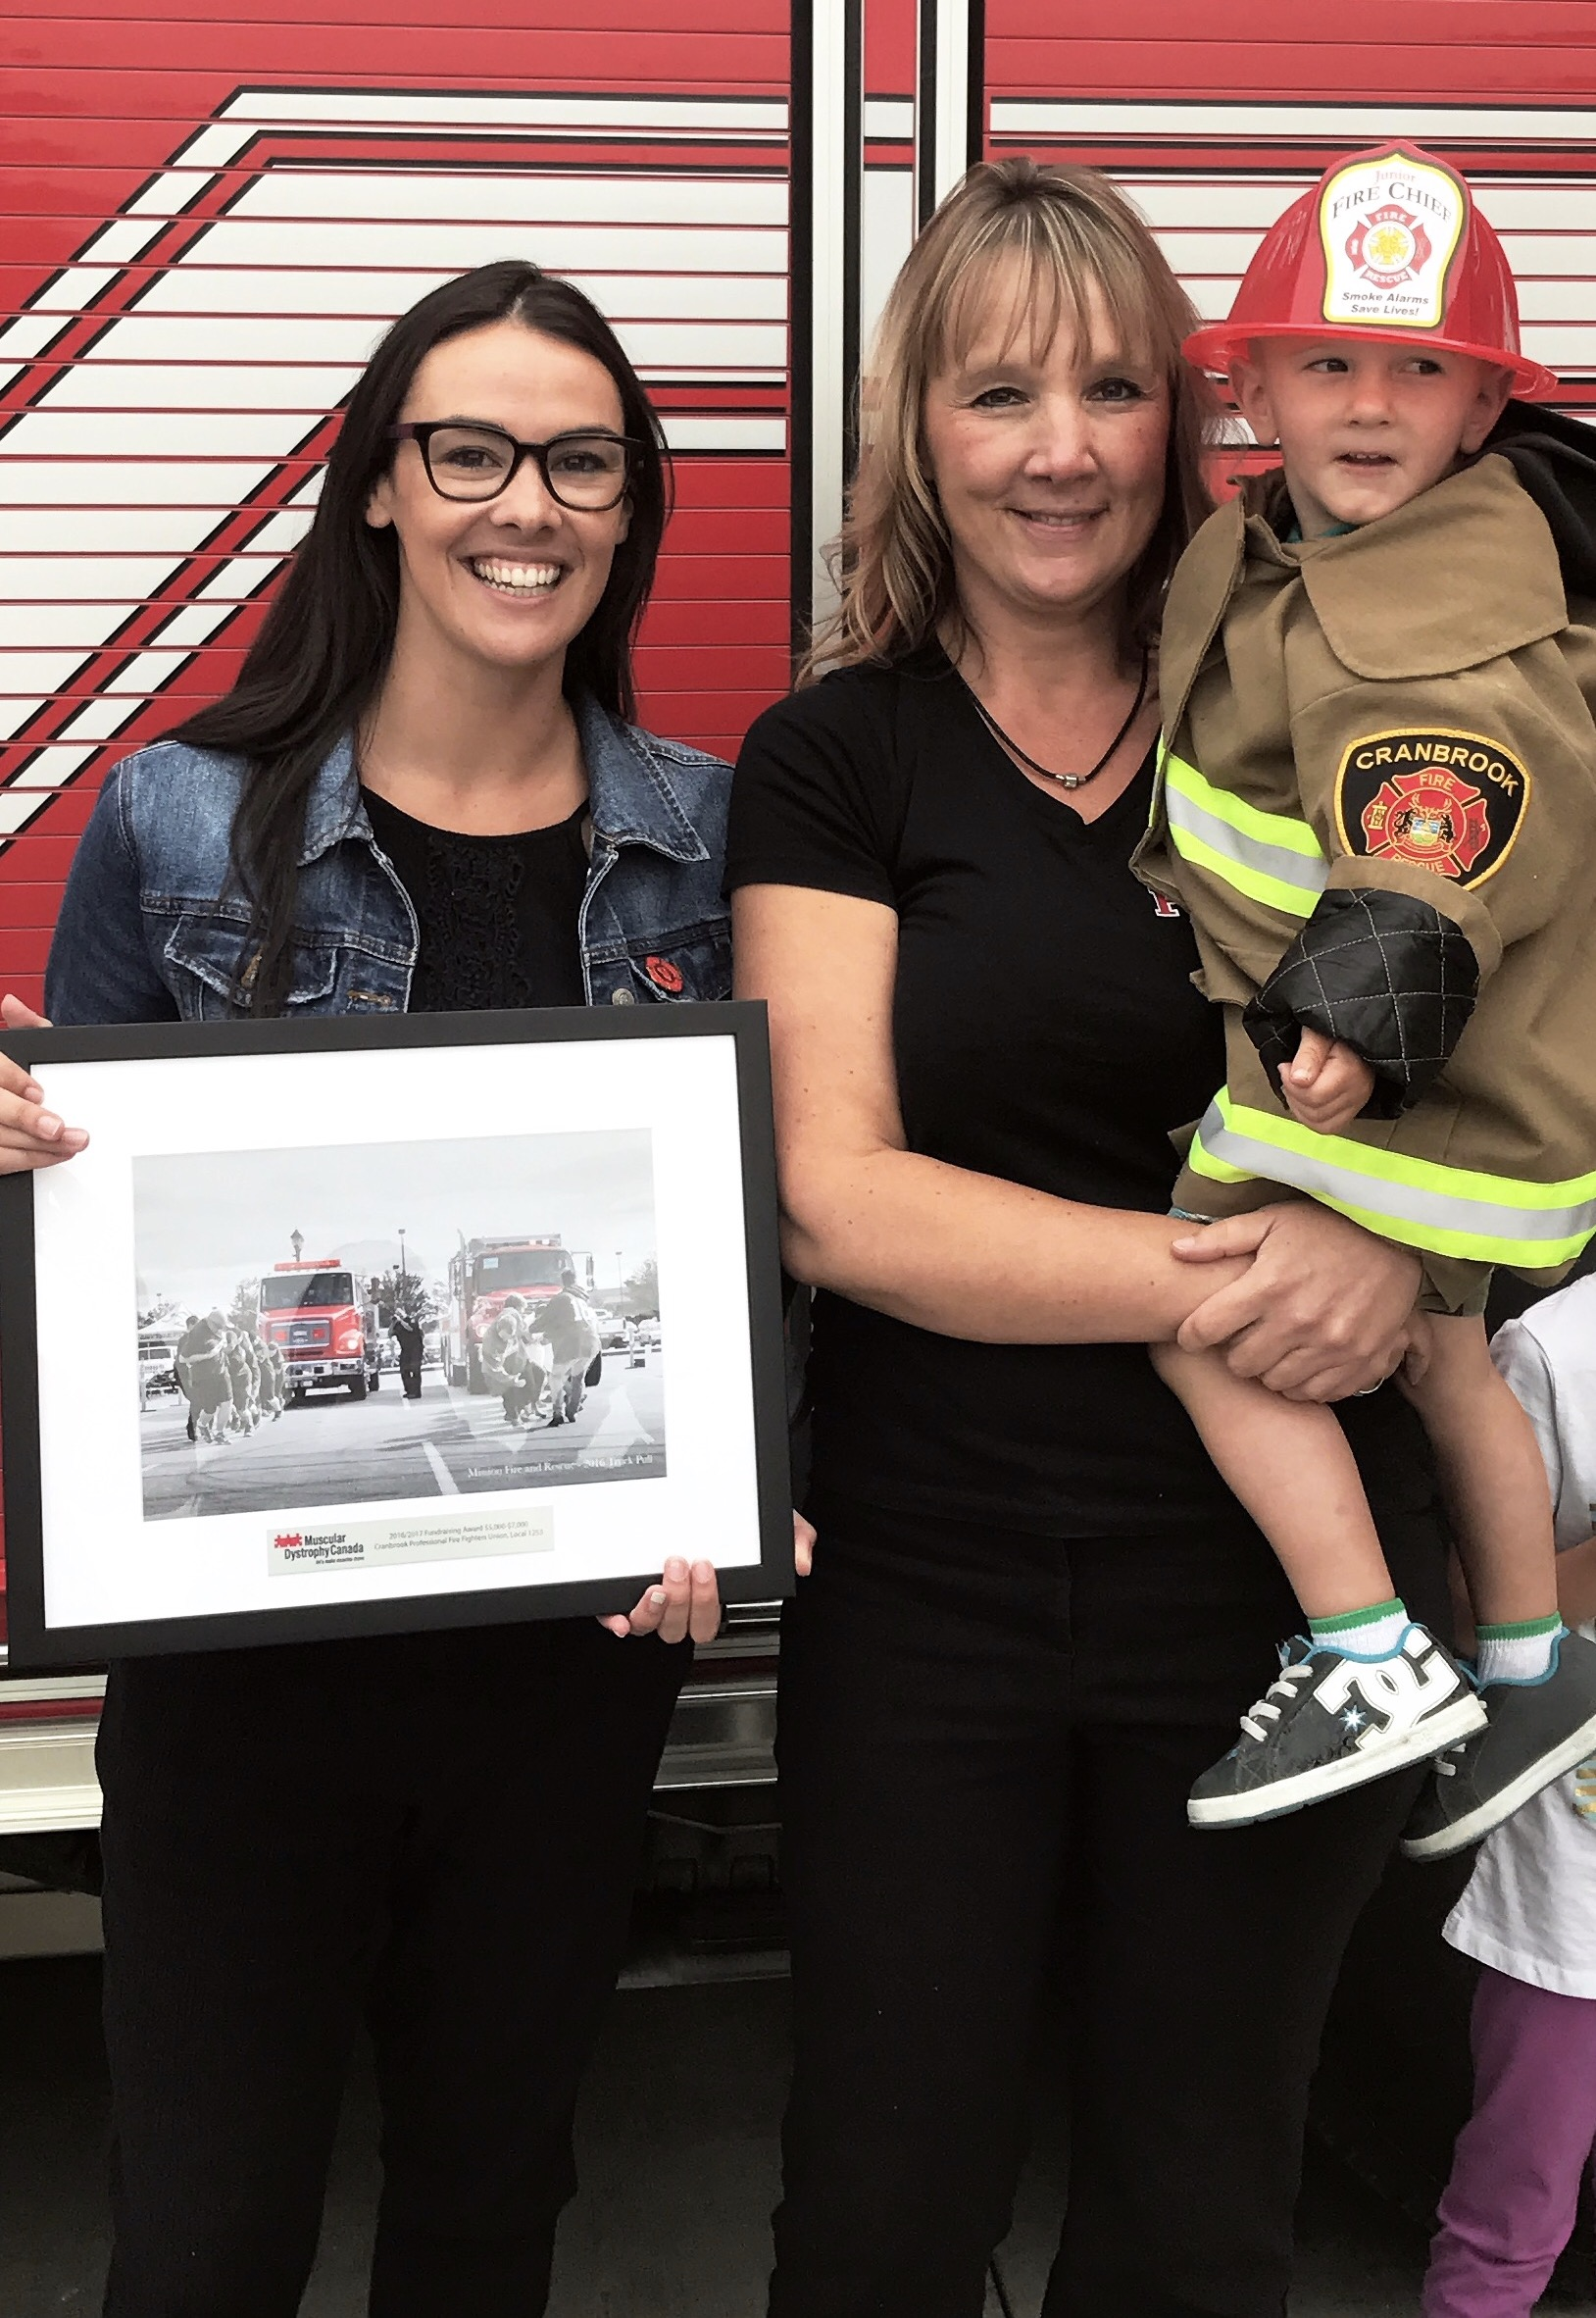 Cranbrook Fire Dept. recognized for MD fundraising